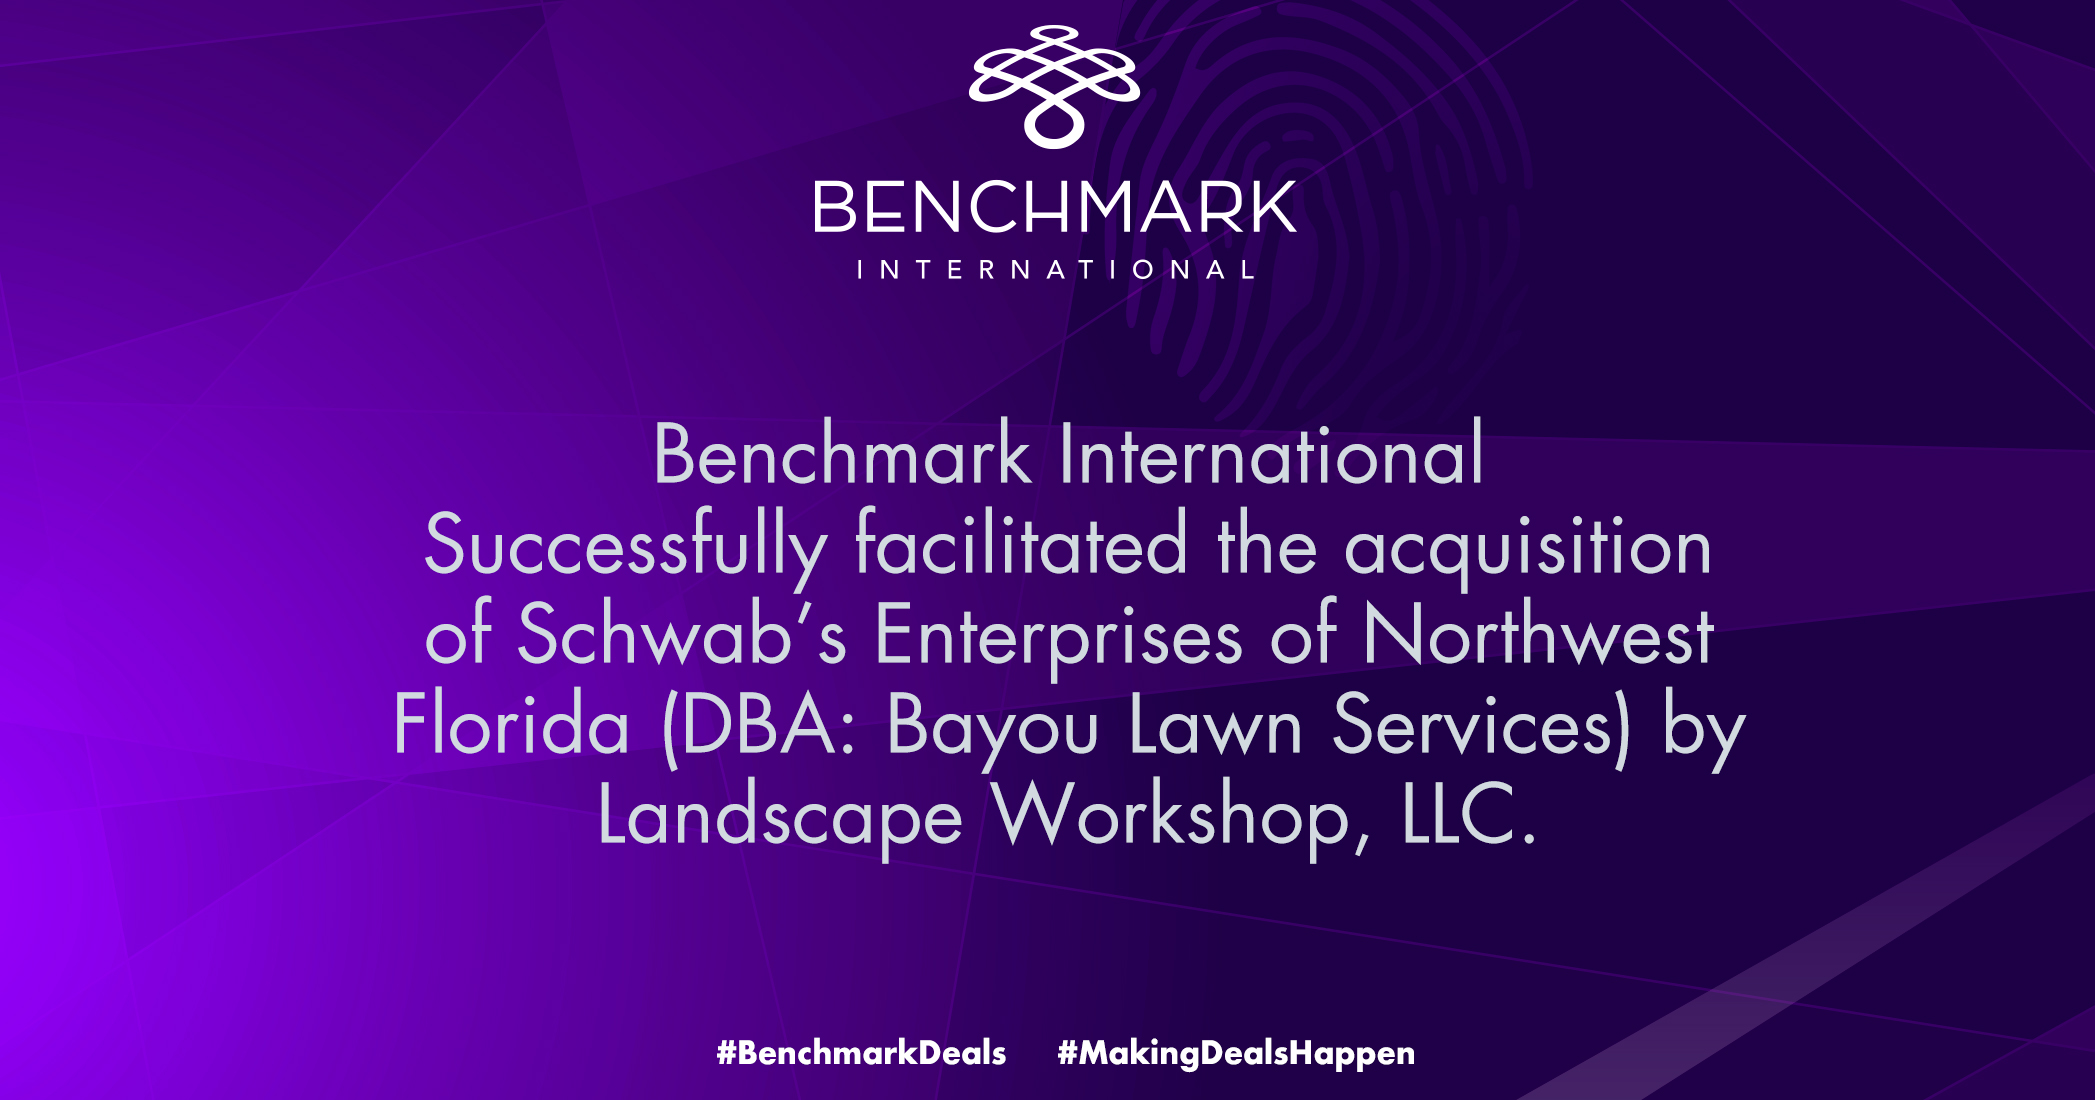 Benchmark International successfully facilitated the acquisition of Schwab's Enterprises of Northwest Florida by Landscape Workshop LLC